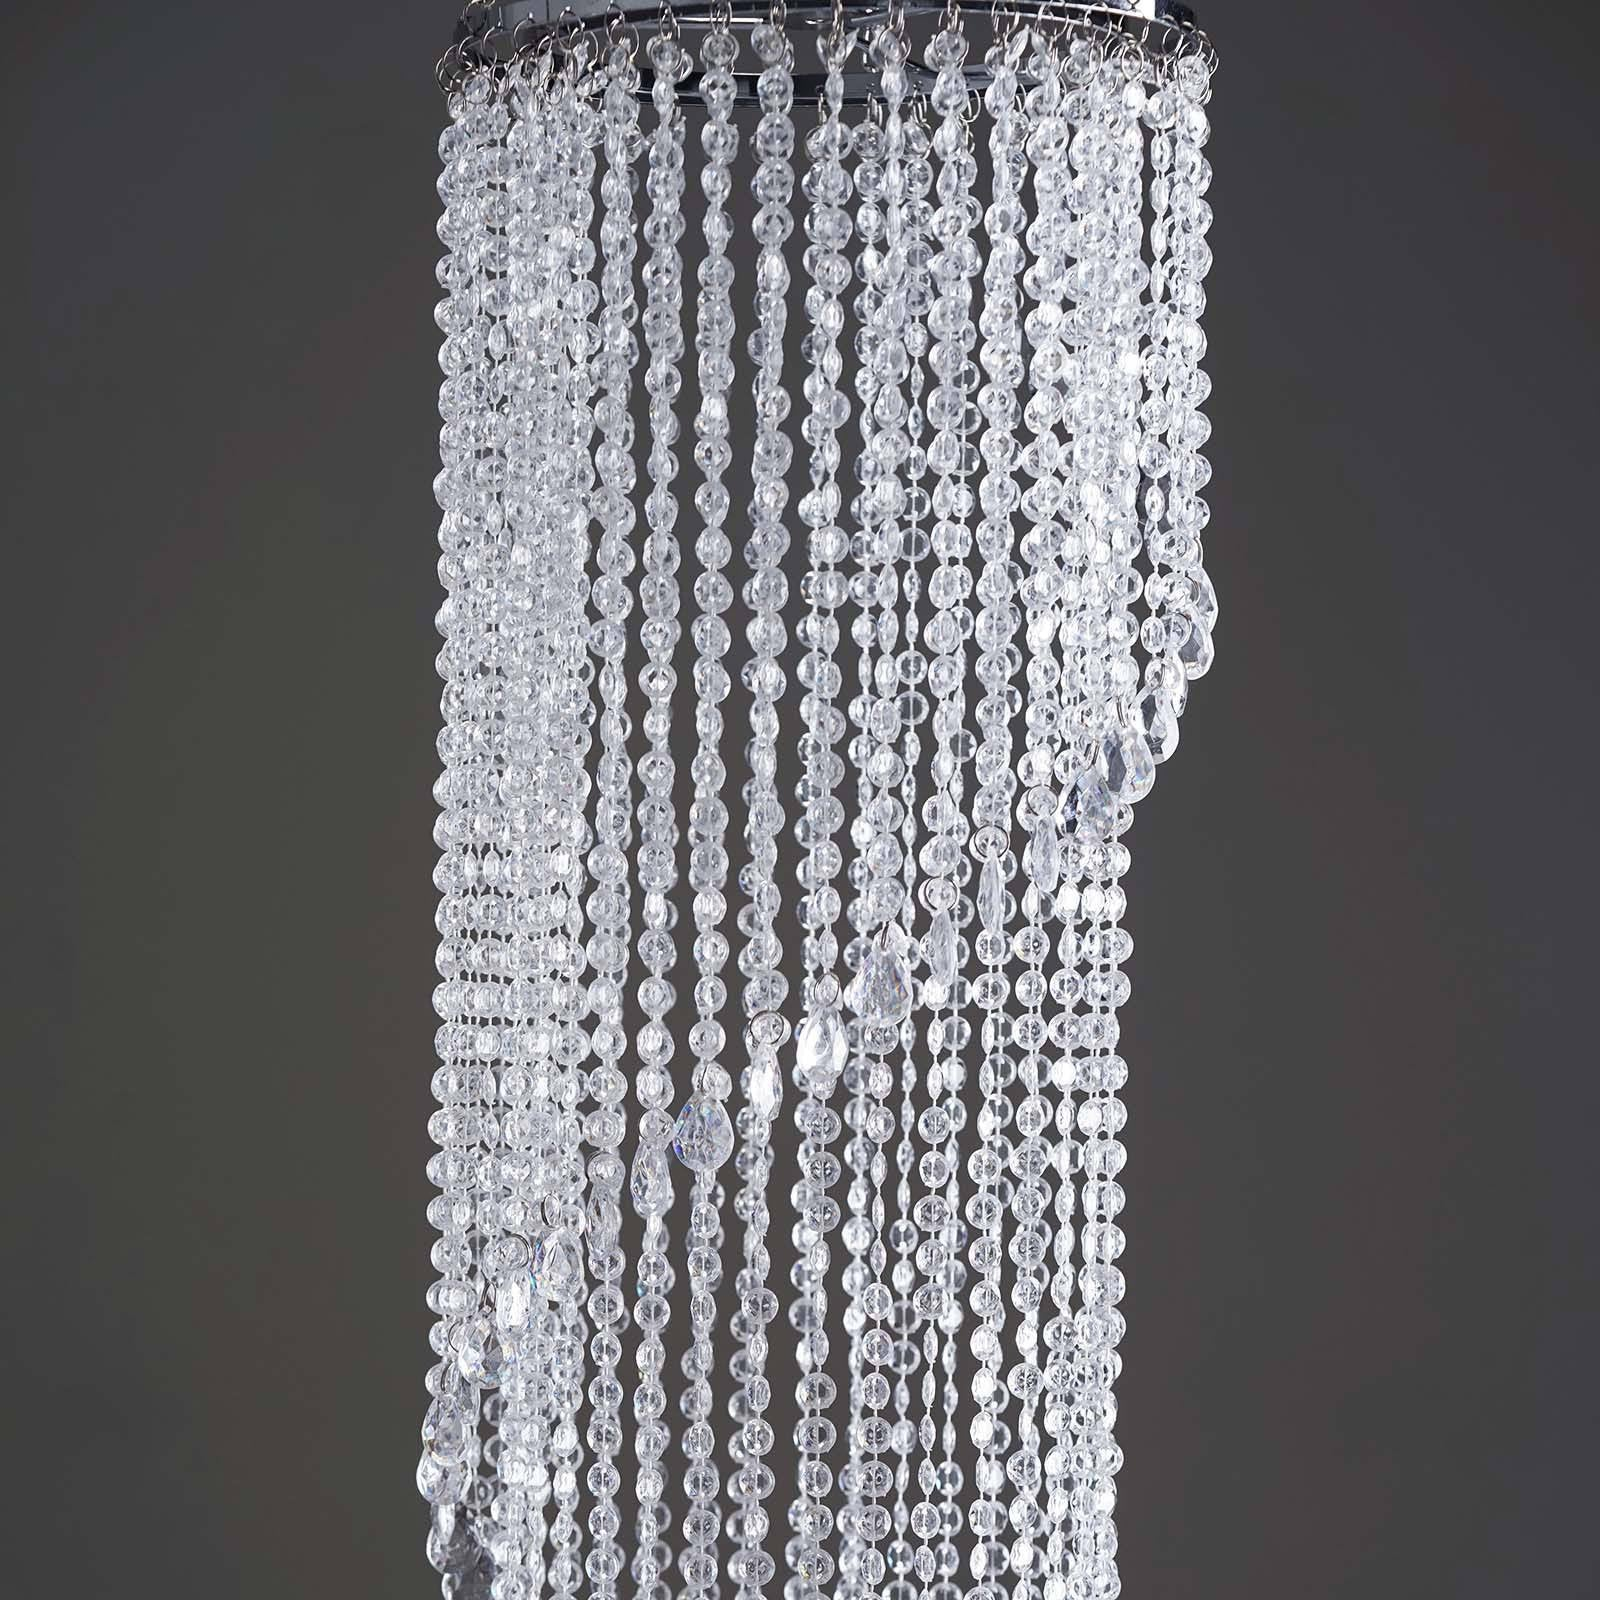 72 acrylic diamond spiral chandelier free stand poles efavormart majestic hanging acrylic spiral diamond chandelier 13inch diameter x 72inch drop aloadofball Images